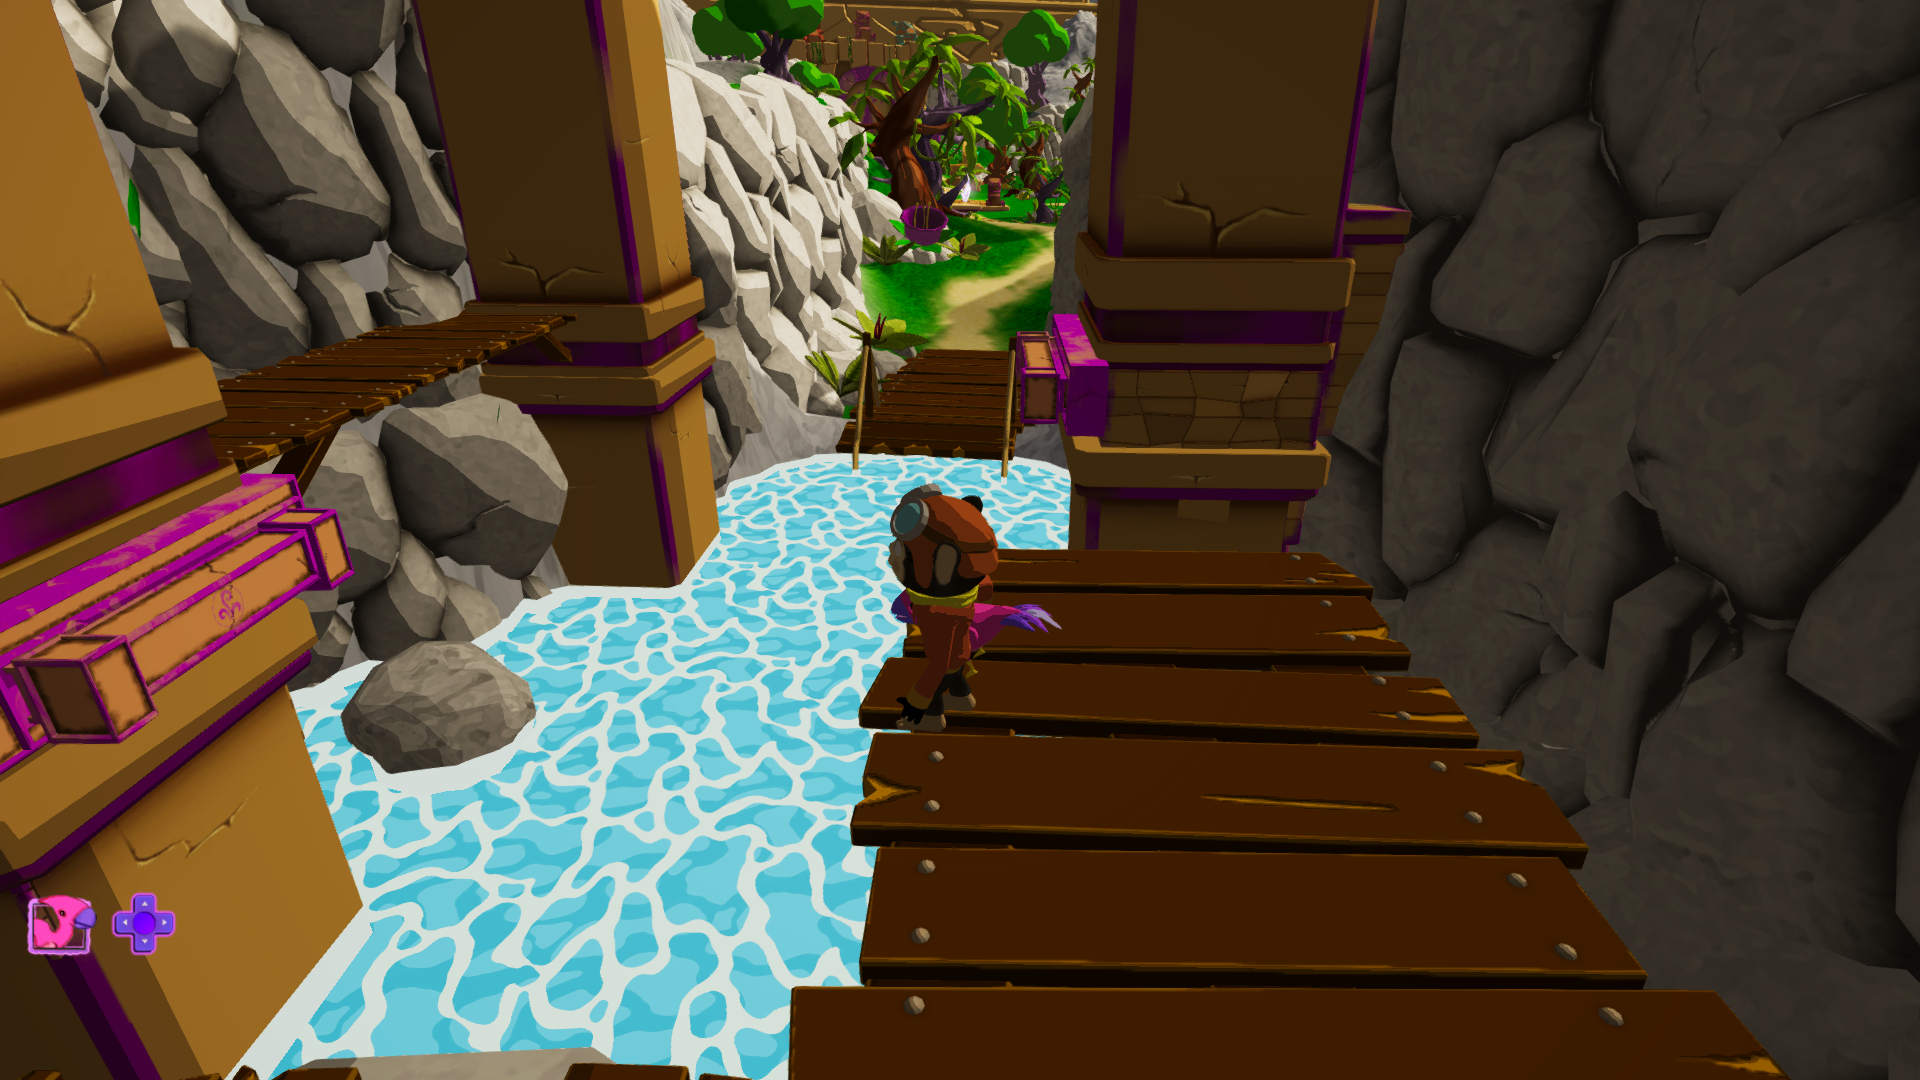 Figure 5: A slightly more intricate platforming section